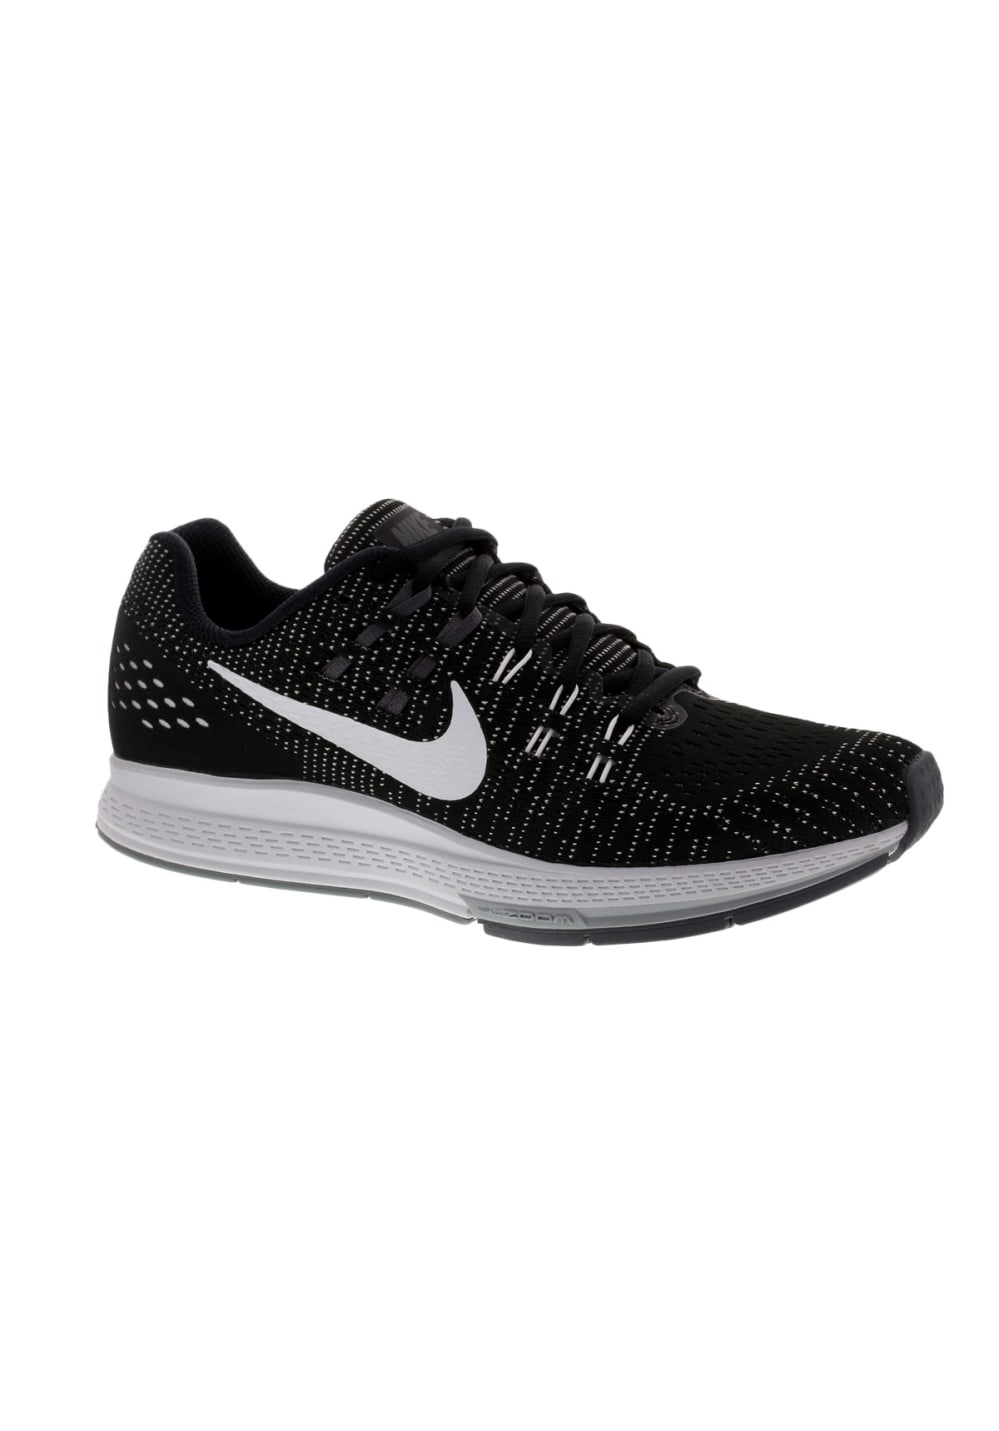 low priced 59f69 299d3 Next. -60%. Nike. Air Zoom Structure 19 - Laufschuhe ...